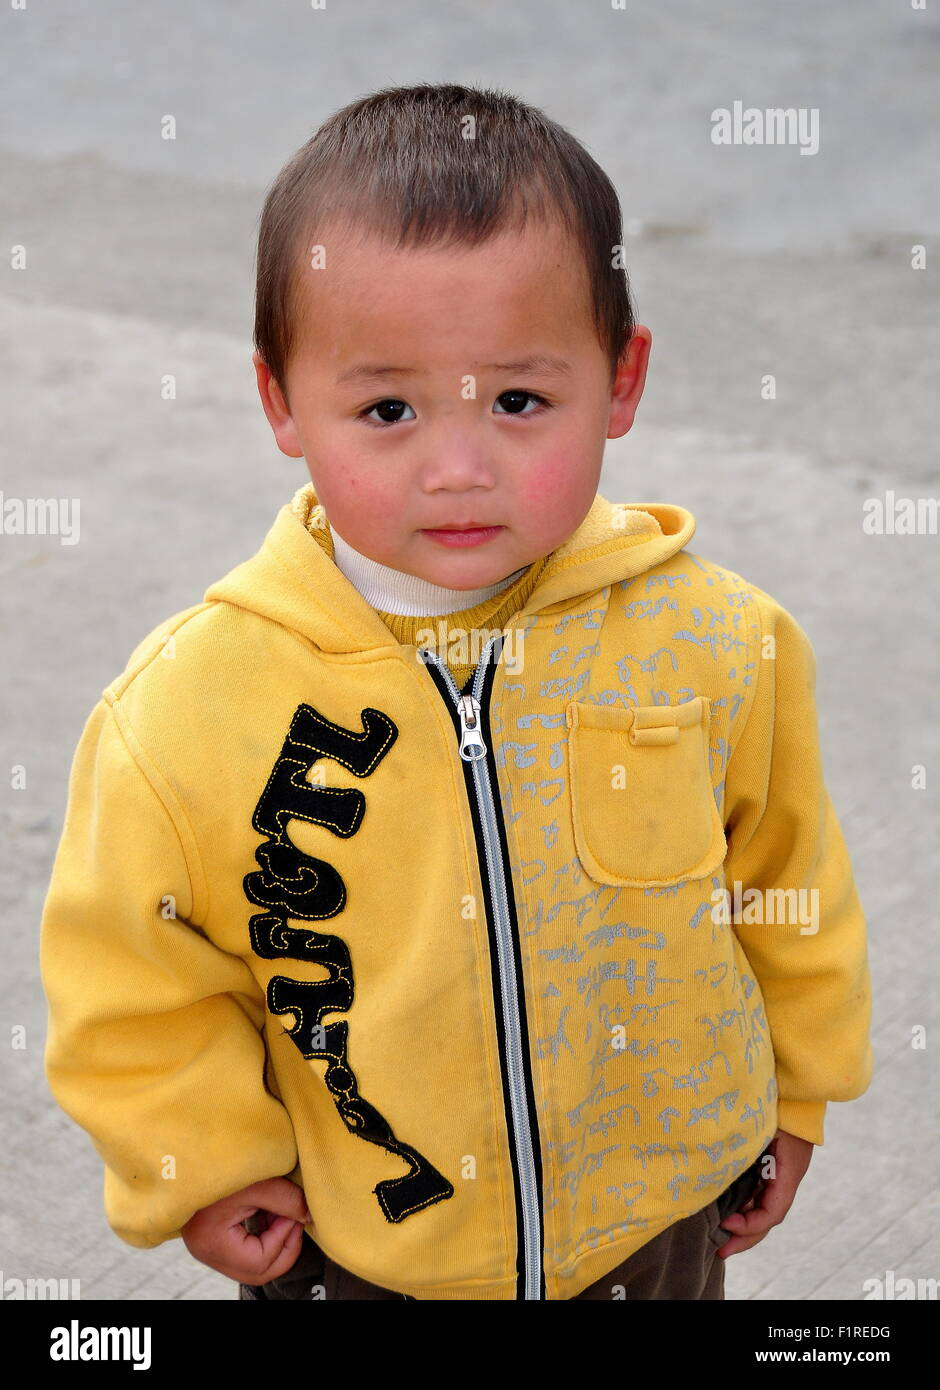 Pengzhou, China:  Little Chinese boy wearing a yellow zippered sweater standing on a country road - Stock Image